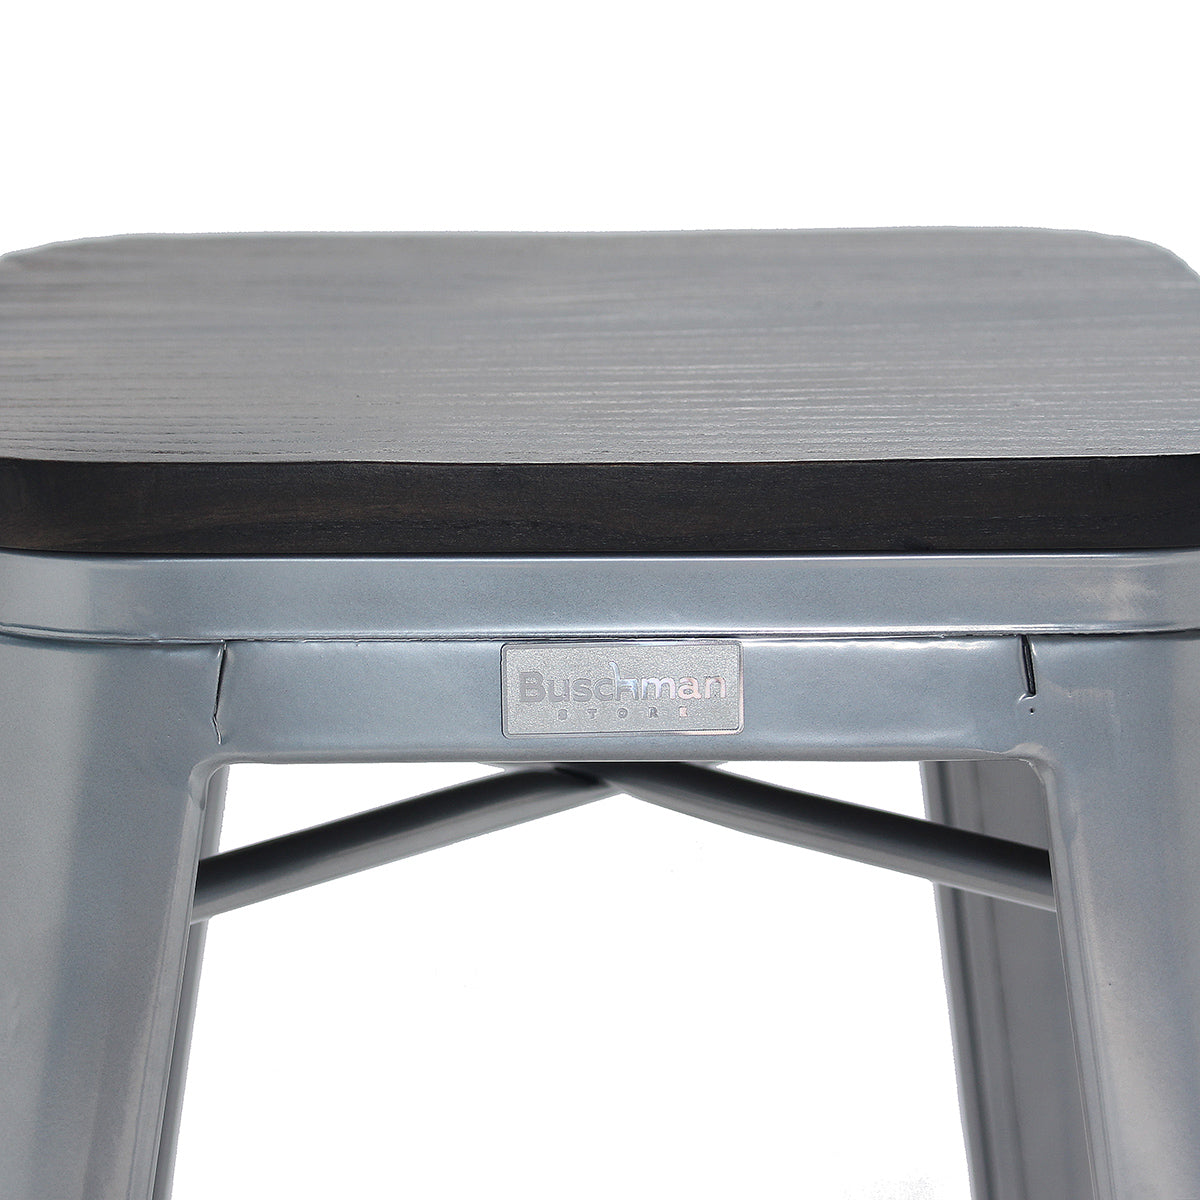 Buschman Set of 4 Gray Wooden Seat 26 Inch Counter Height Metal Bar Stools, Indoor/Outdoor